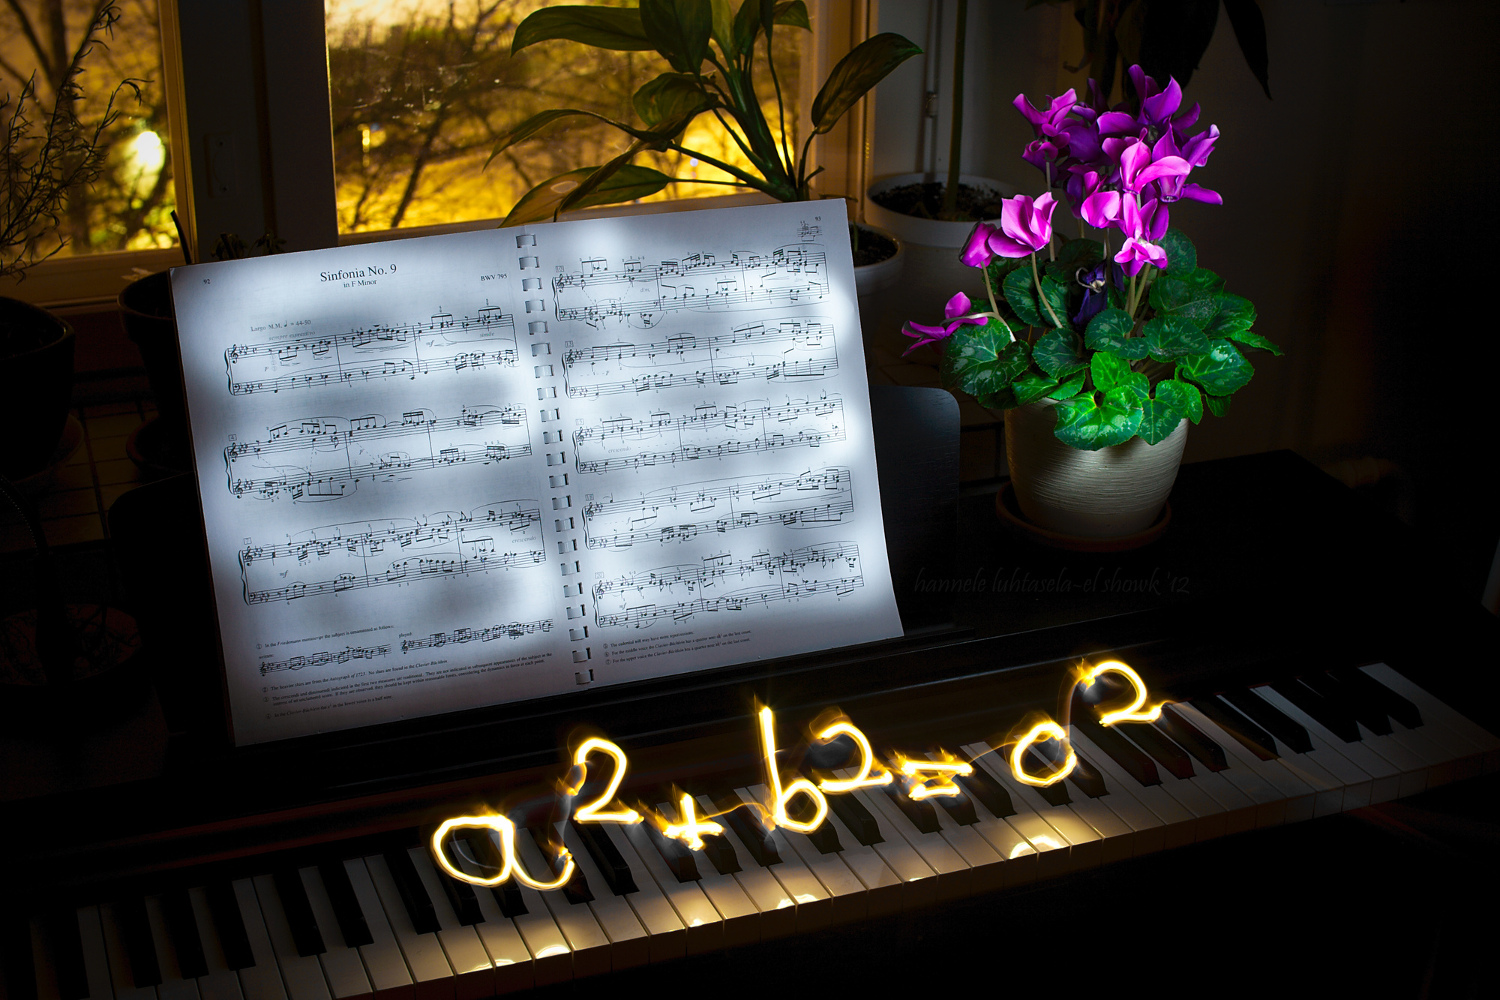 Light painting and light scribbling on a piano: the Pythagoras theorem